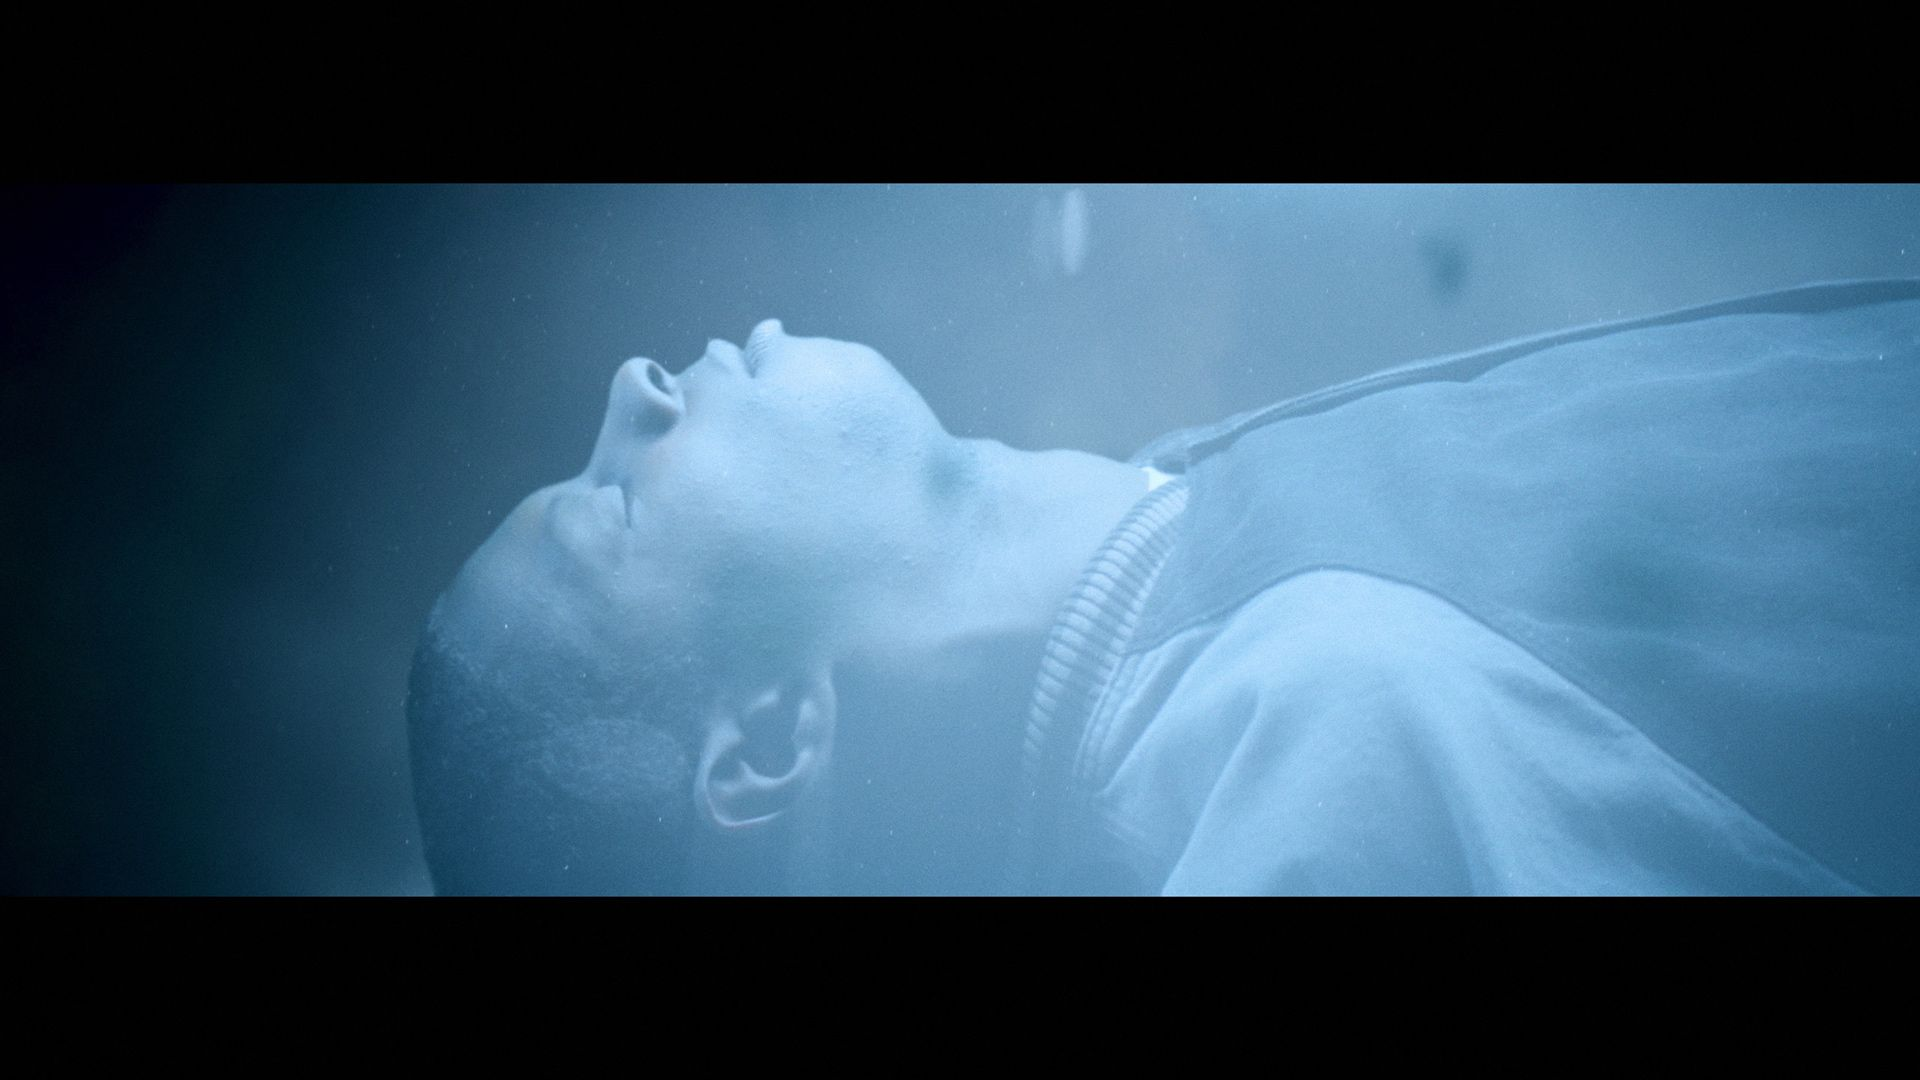 singer Karim Ouellet being abducted by aliens for his music video of Chapter 1 filmed by Les Gamins